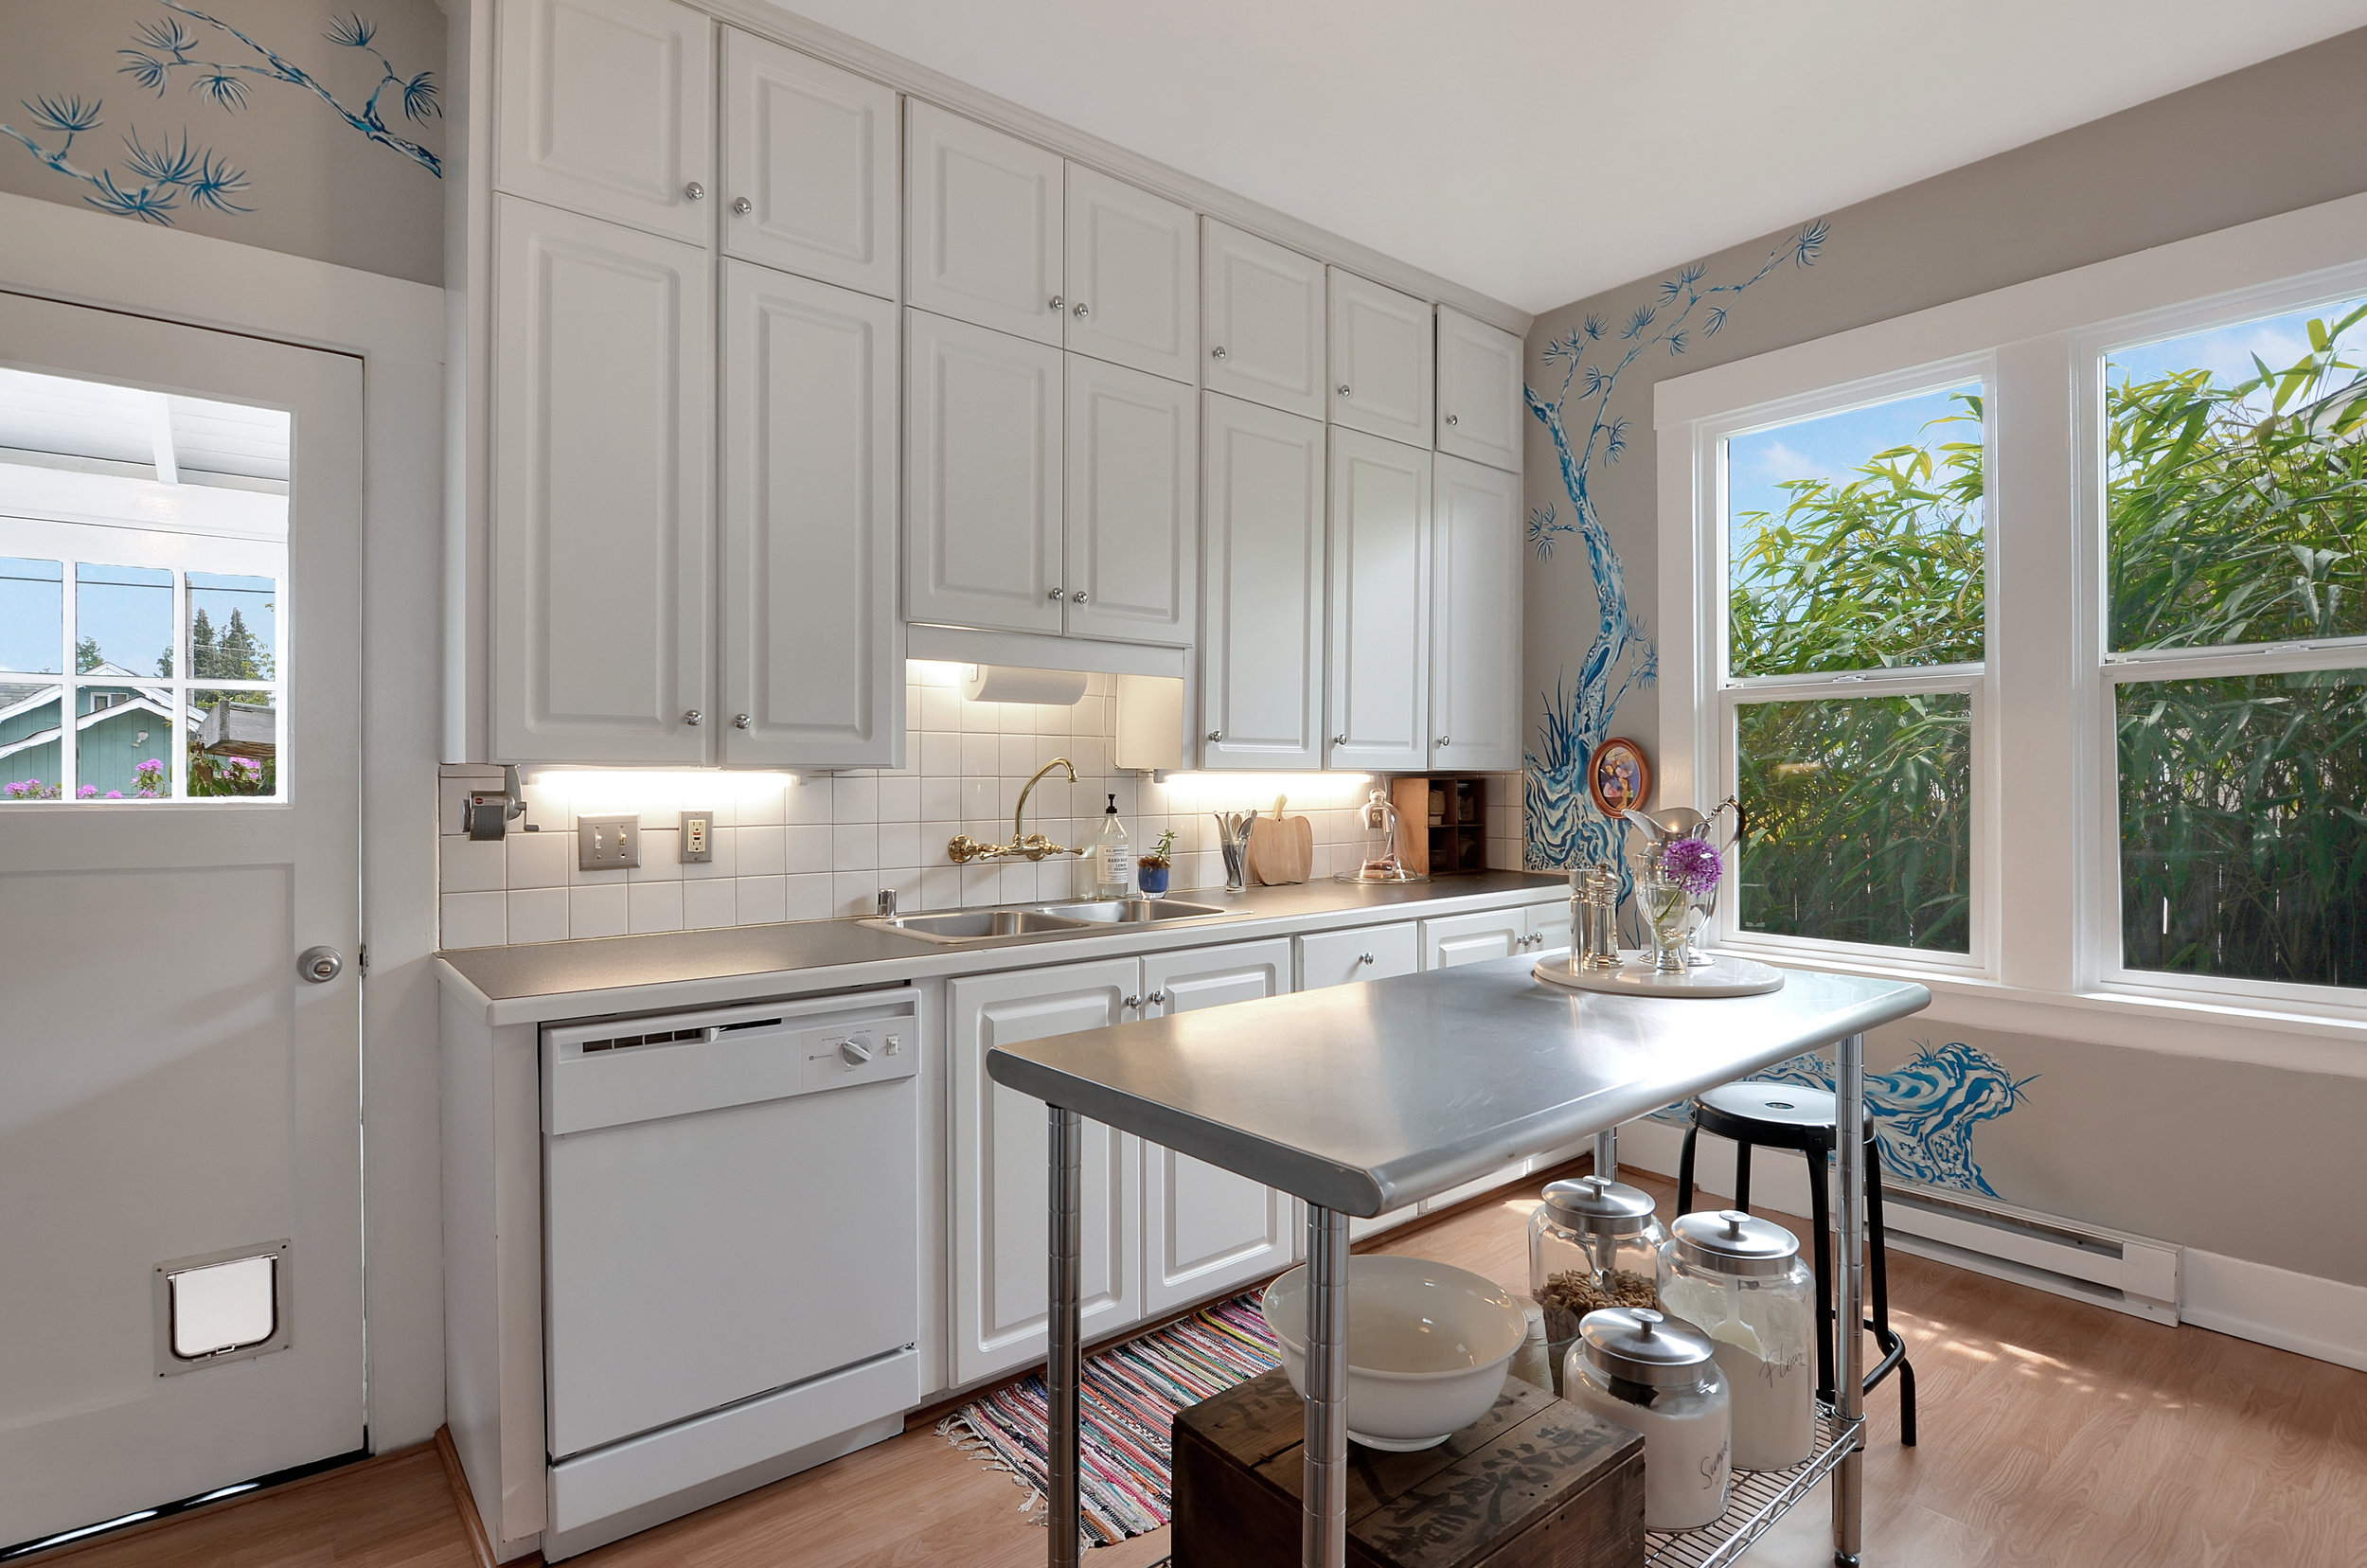 The kitchen leads into the enclosed back porch where the laundry is conveniently located. Also connected to the kitchen are the downstairs bedroom/office and the front living room.